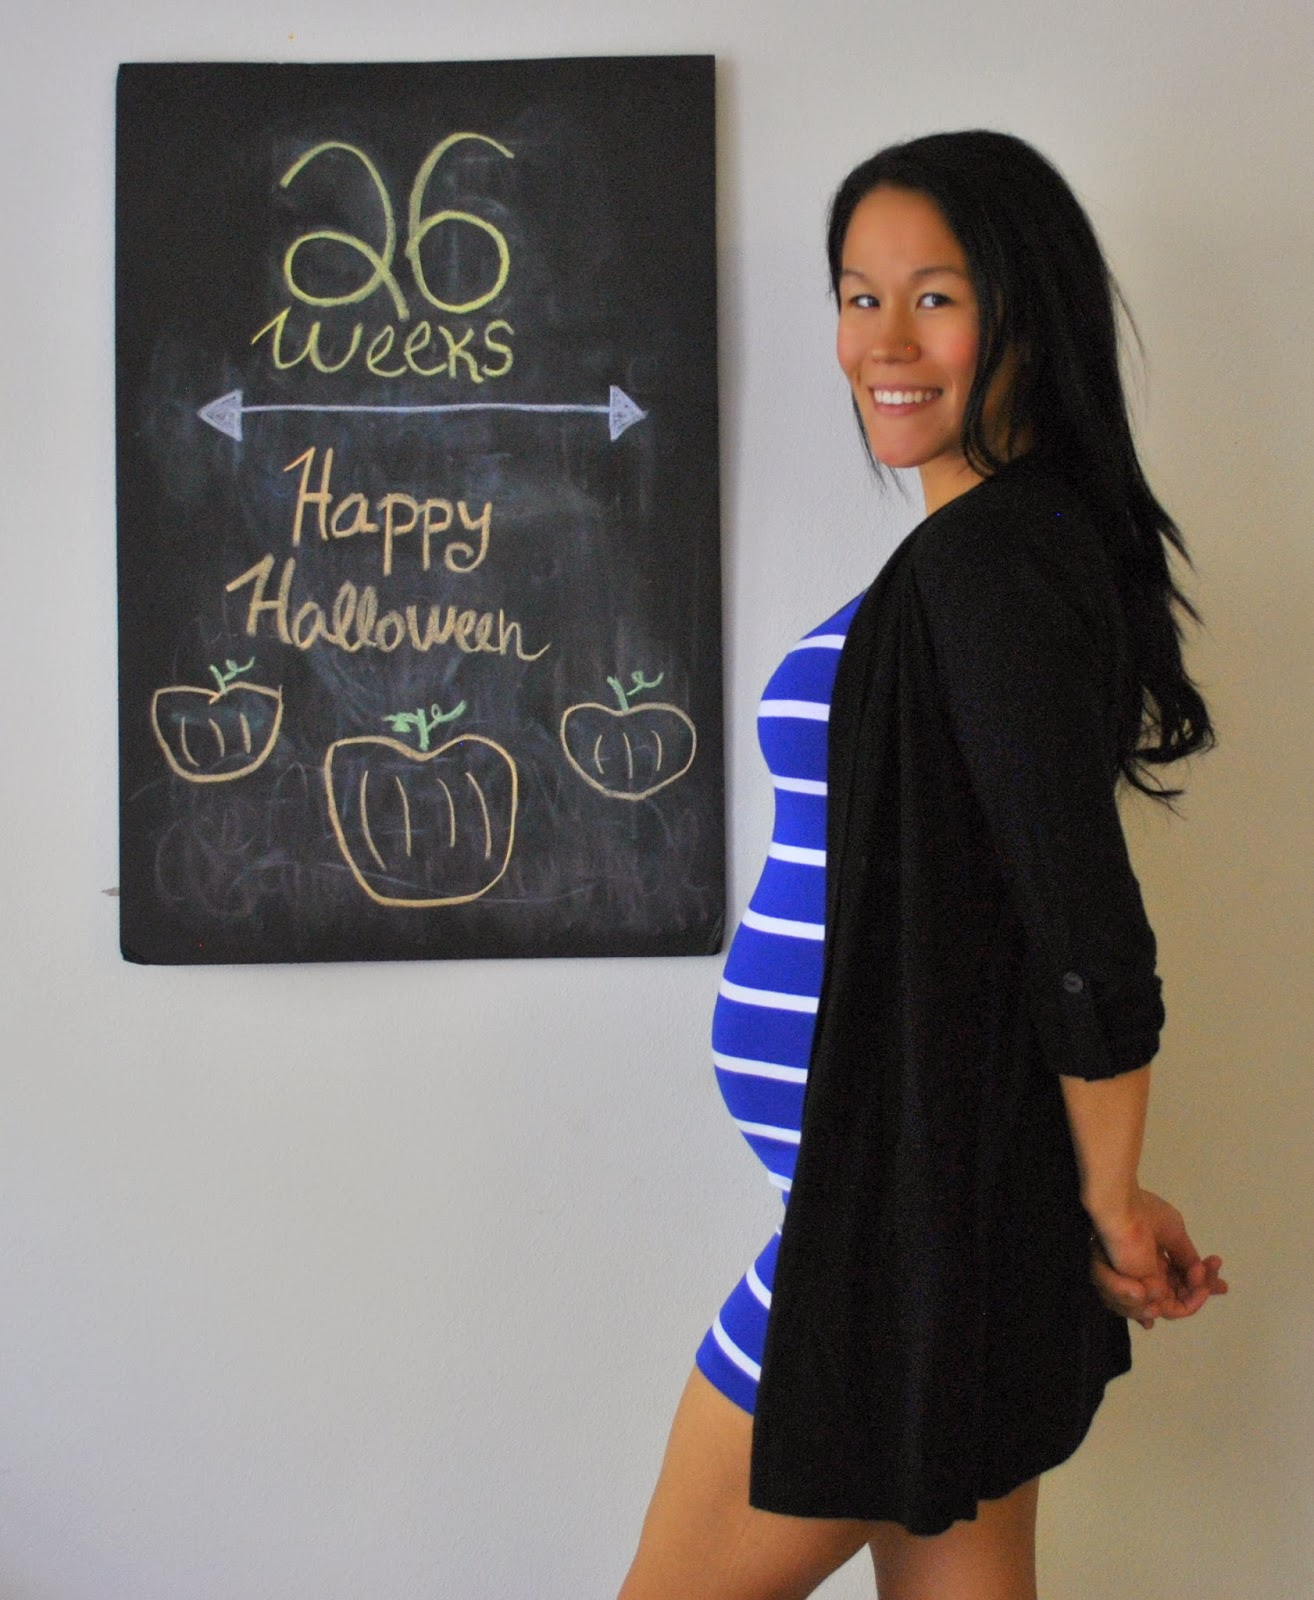 Pregnancy week 6 no morning sickness